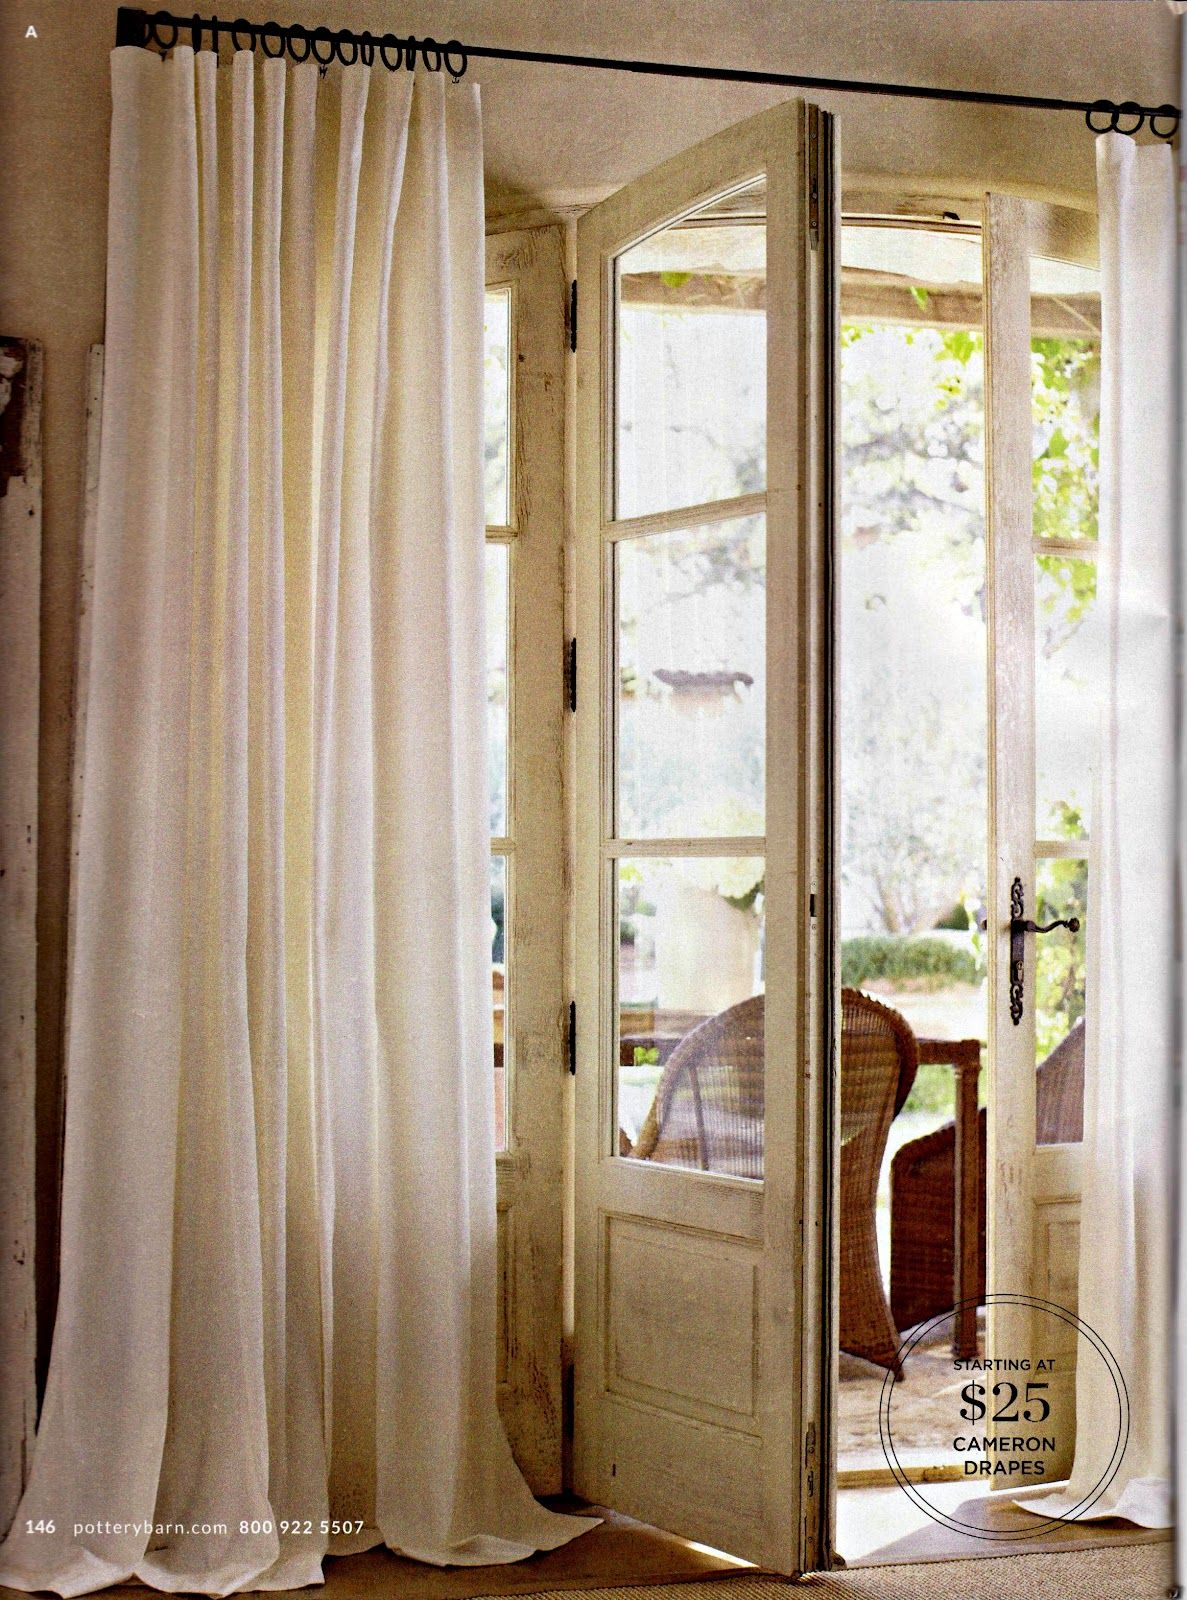 pottery barn curtains google search